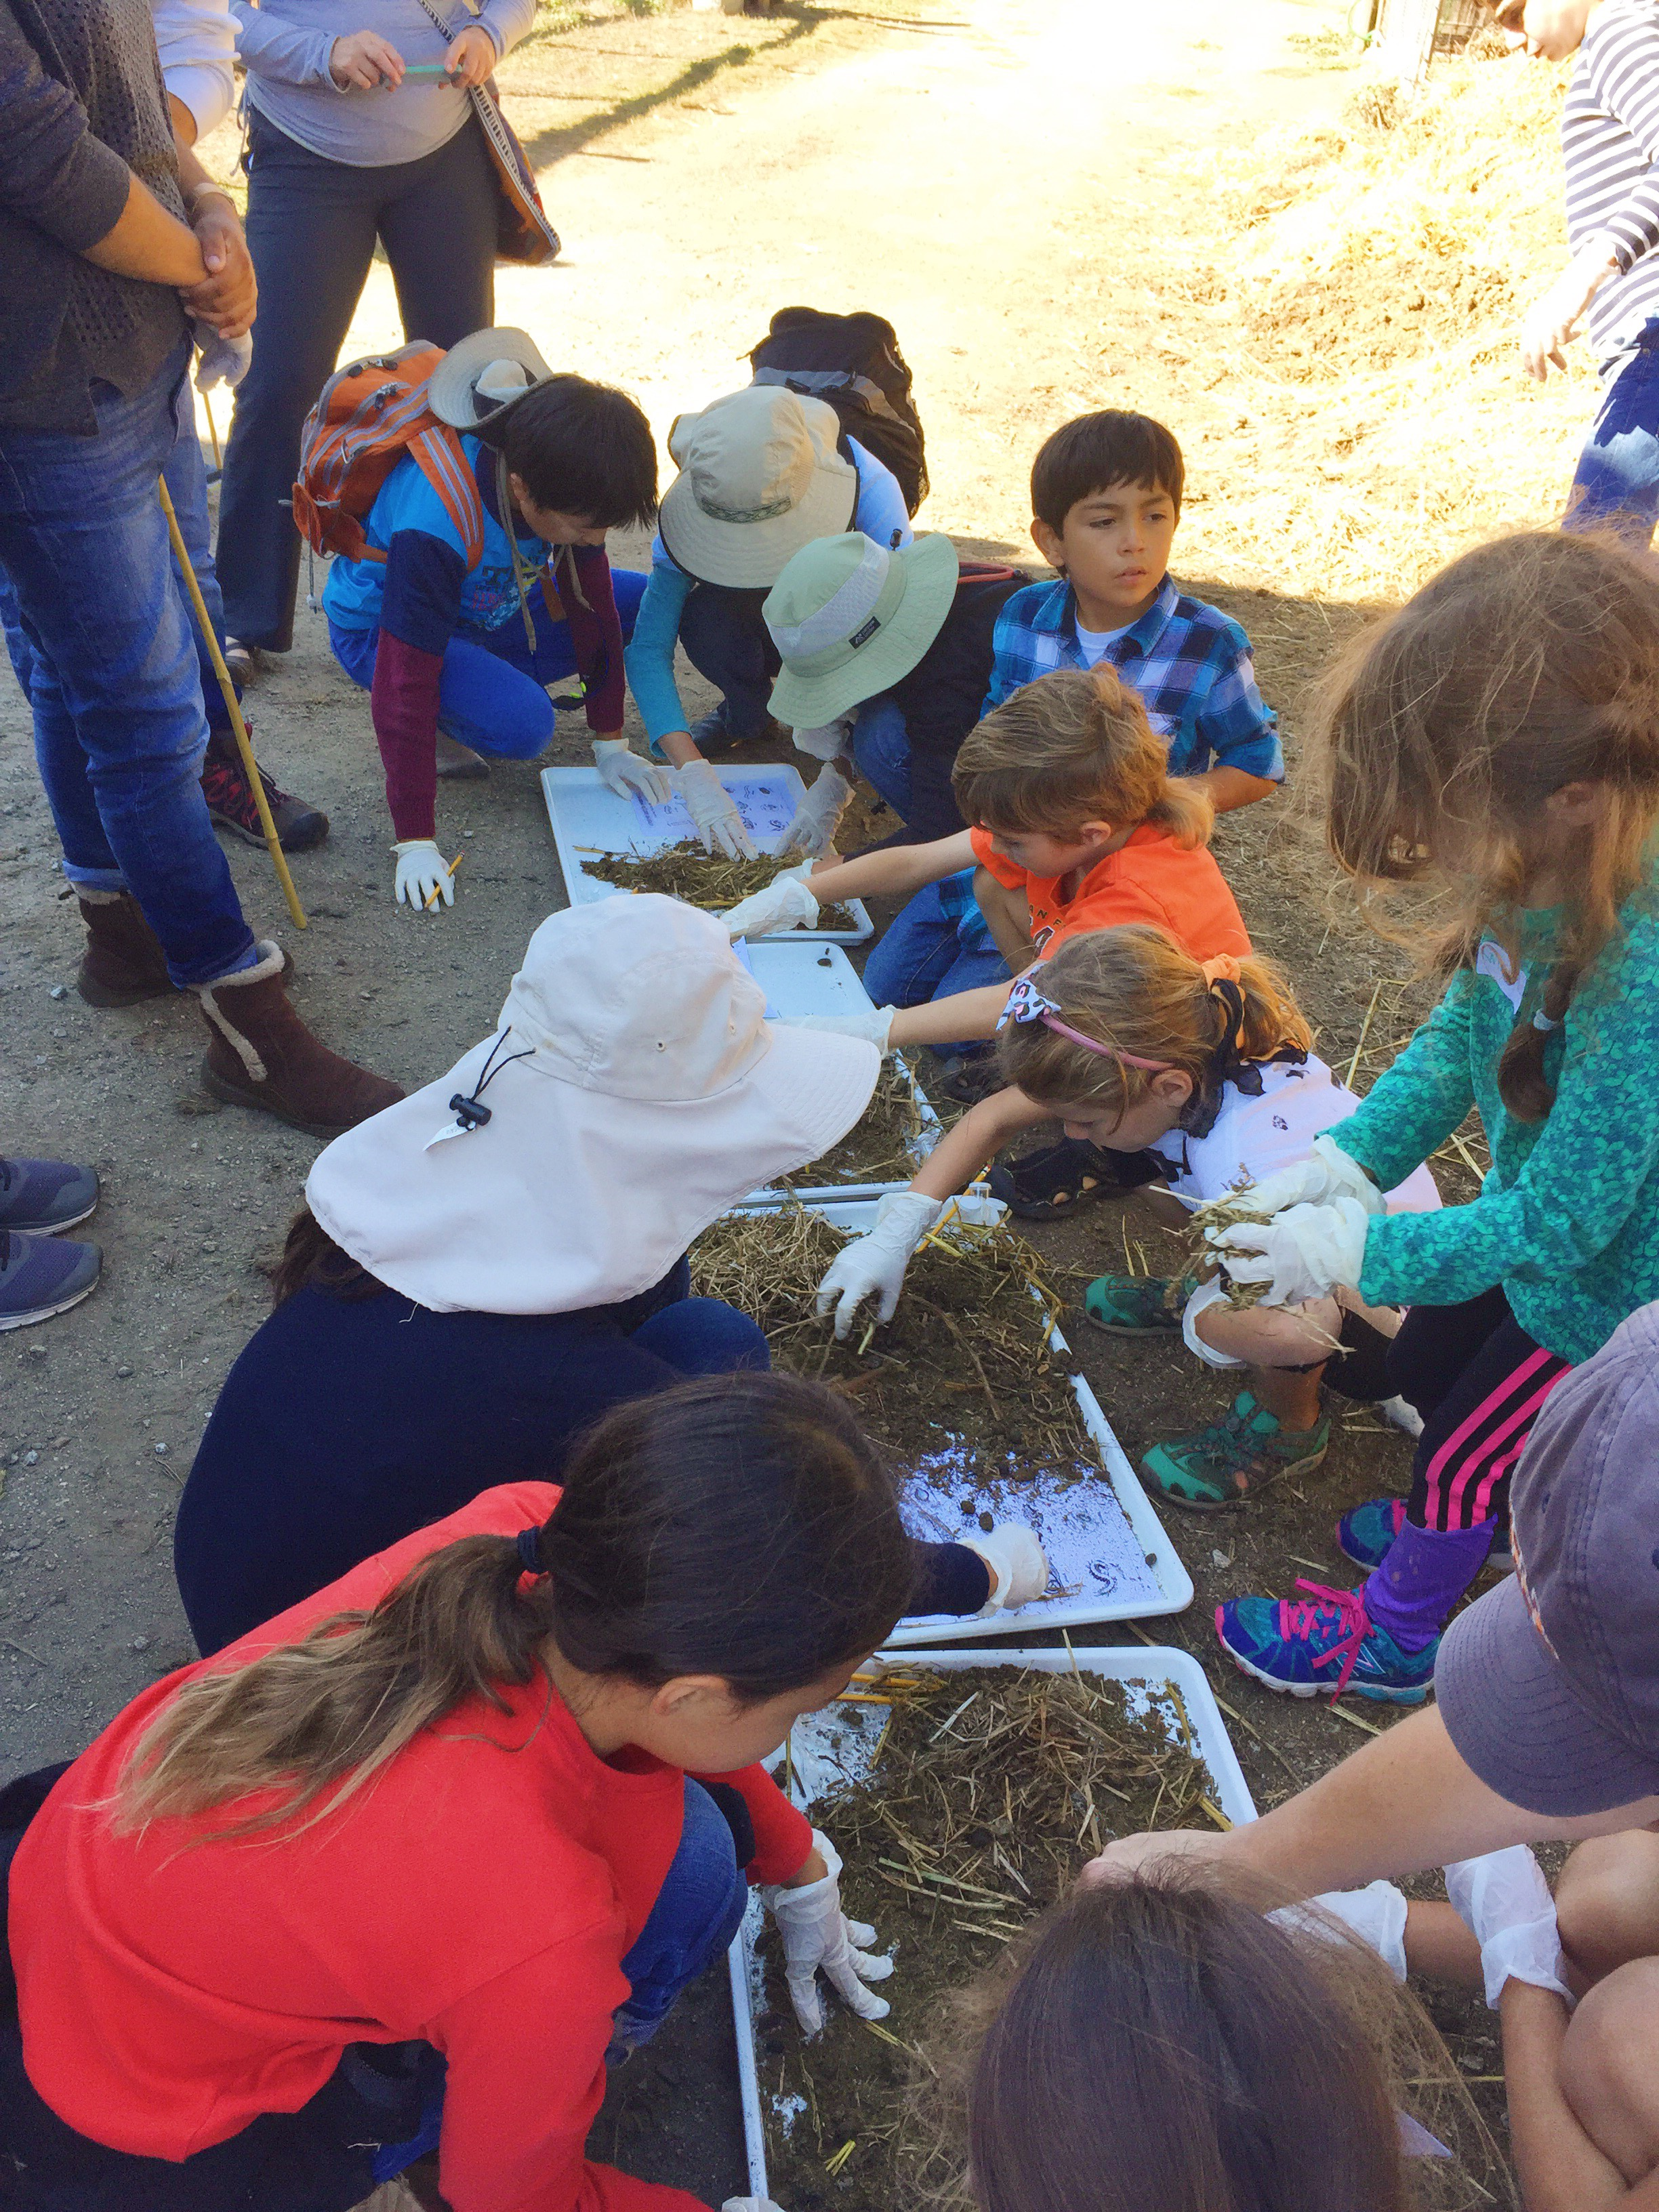 Sifting through the compost to find decomposers.